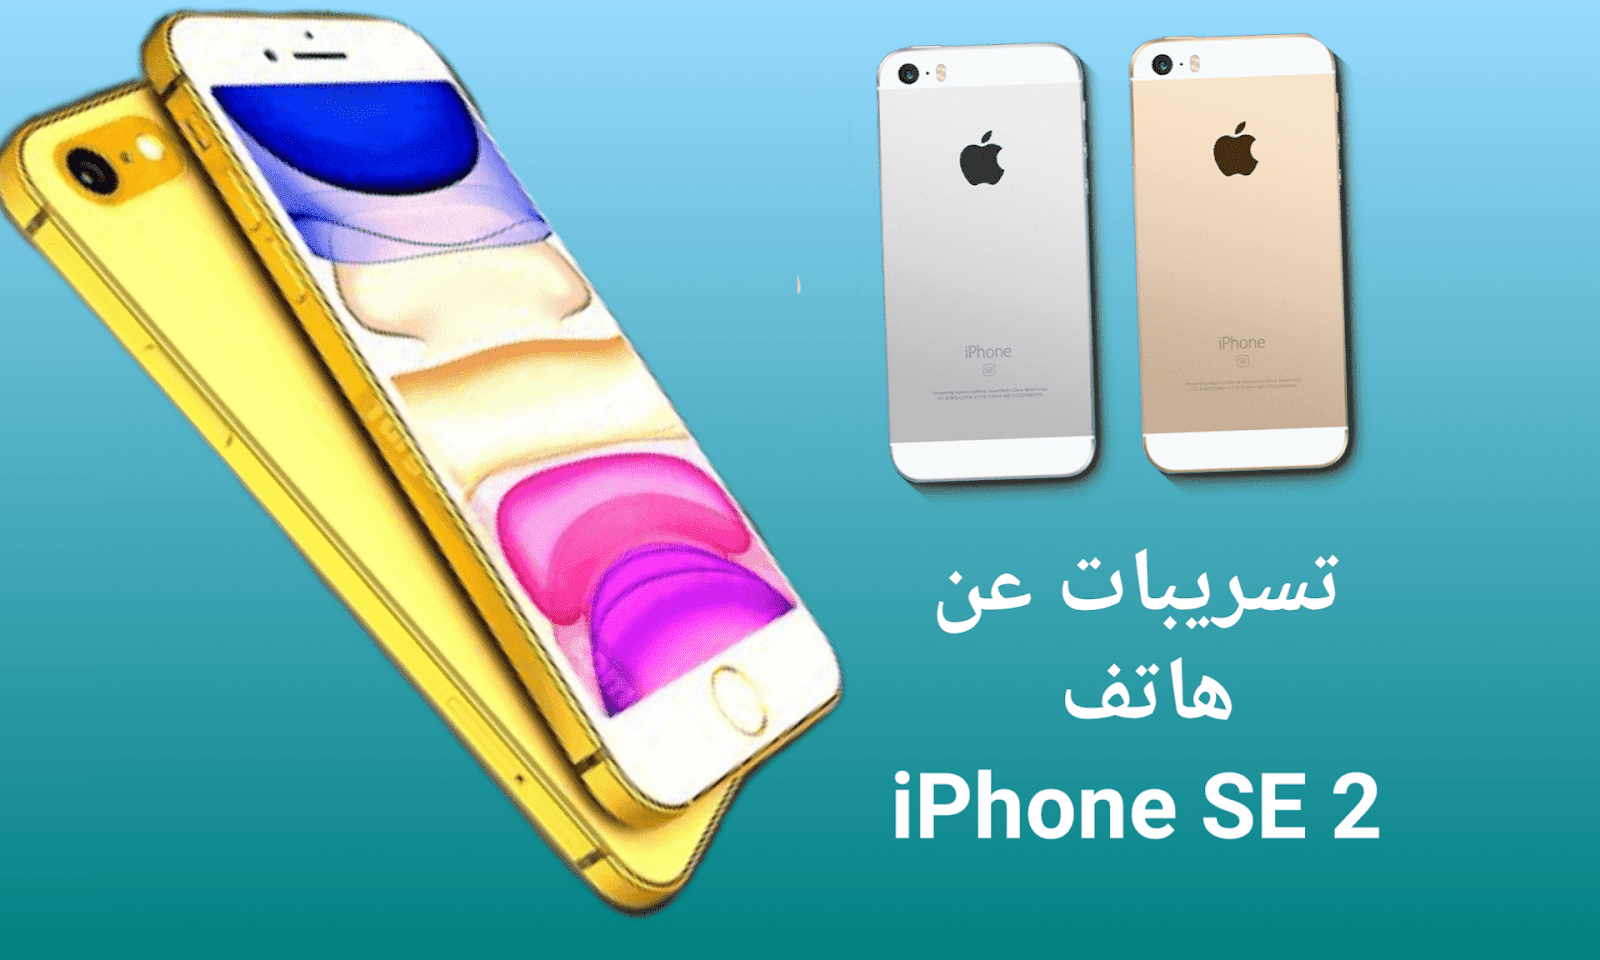 how to shut down iphone 11, iphone 11 price in india, iphone xr price in india, iphone 11 precio usa